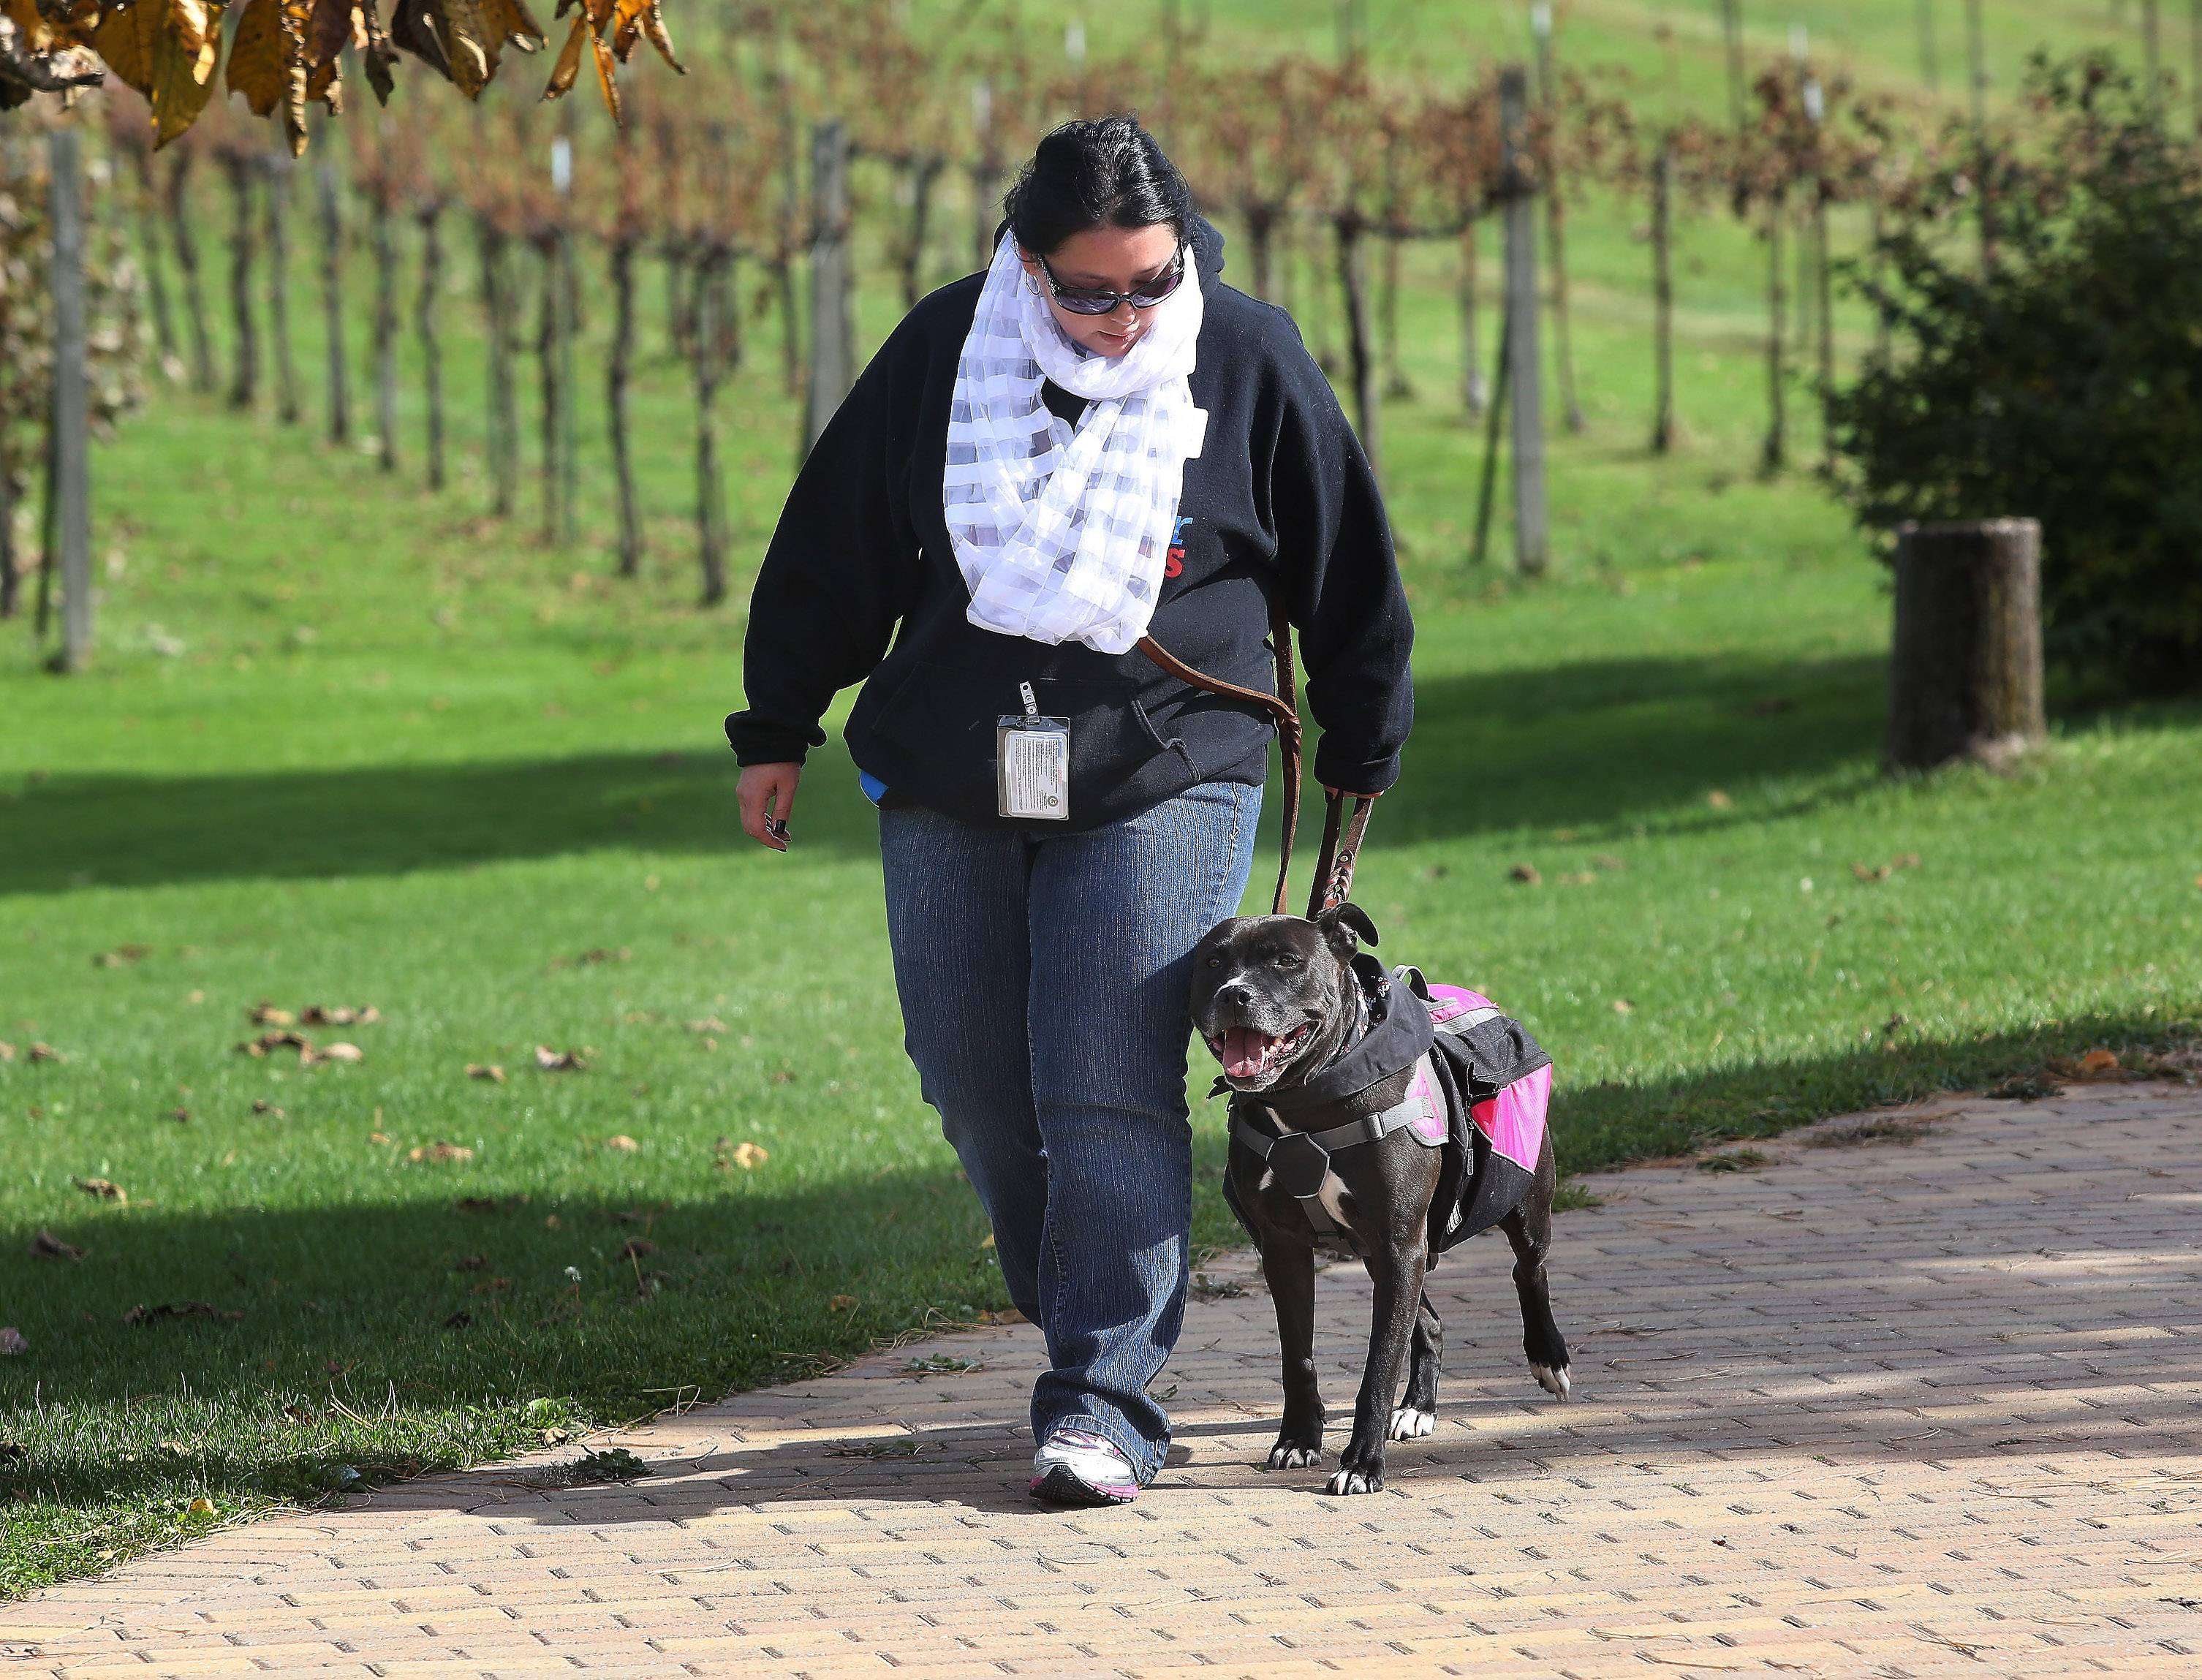 Lori Ogawa of Hanover Park walks with pit bull Sheena during the 2nd annual Pinot with Pits for Patriots at Valentino's Vineyards in Long Grove. The event Sunday raised funds to help with costs of training rescued pit bulls to become service dogs for veterans and first responders.